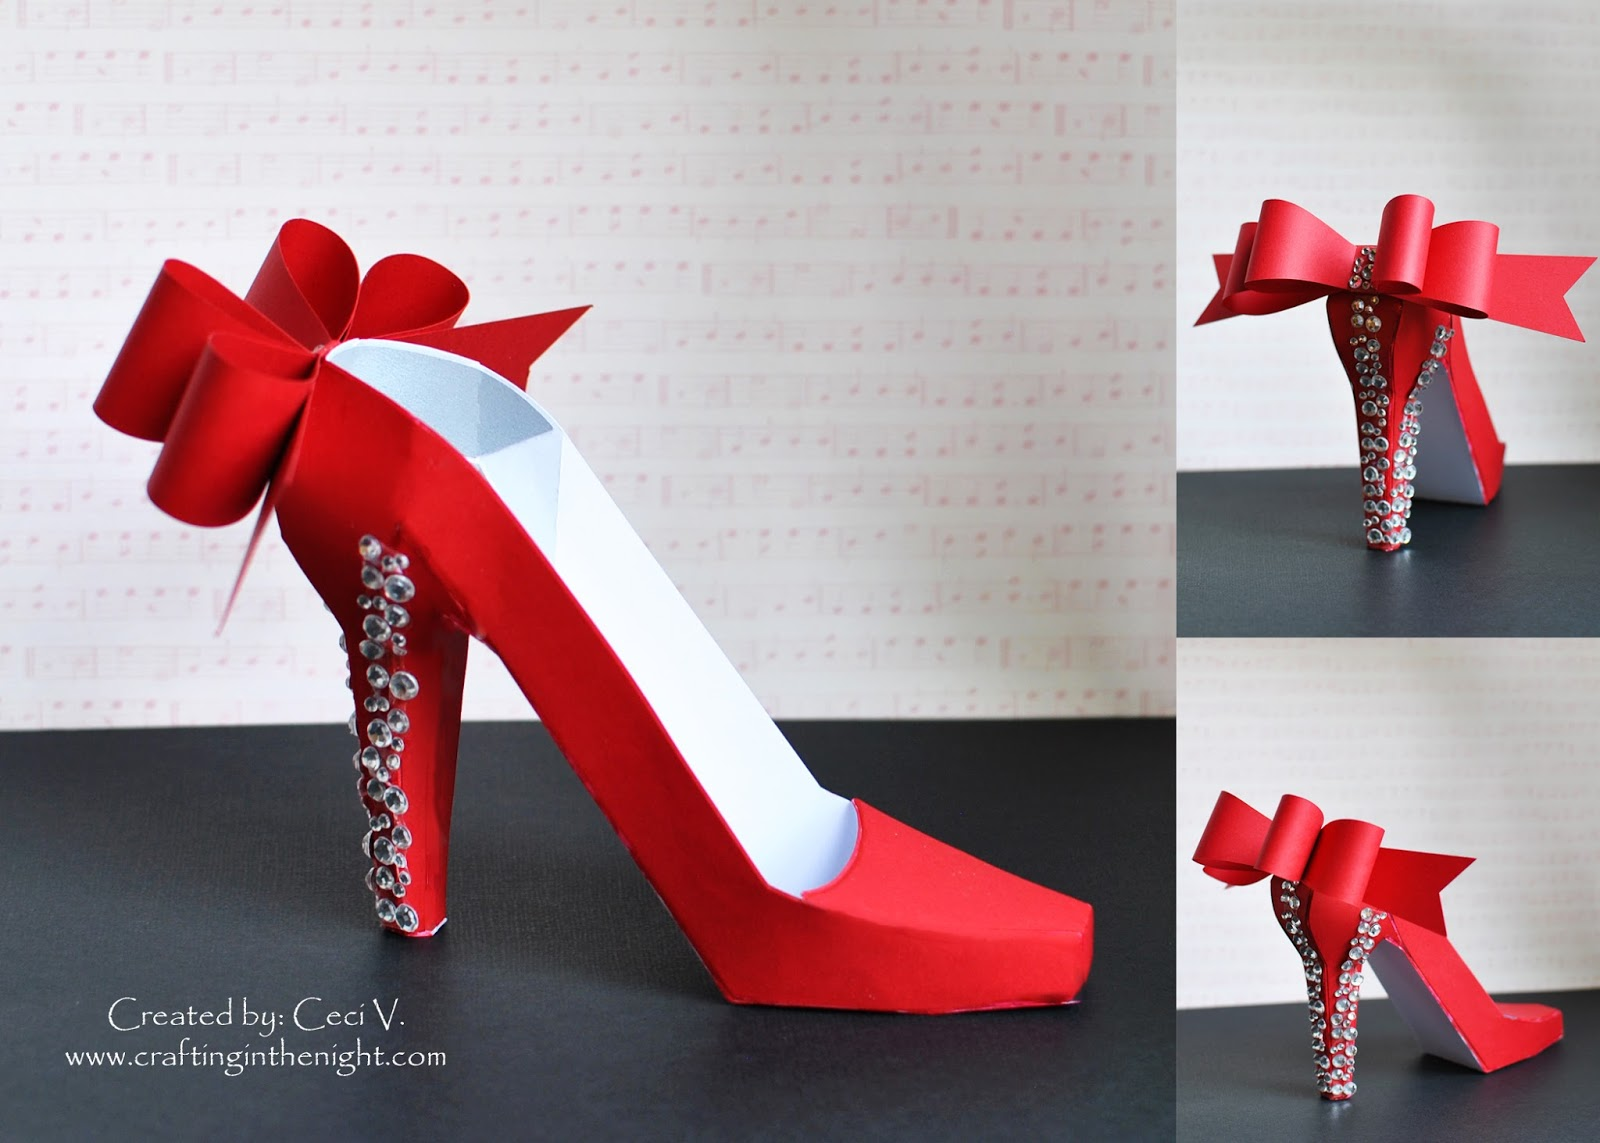 how to make paper shoes templates - crafting in the night 3d high heel shoe